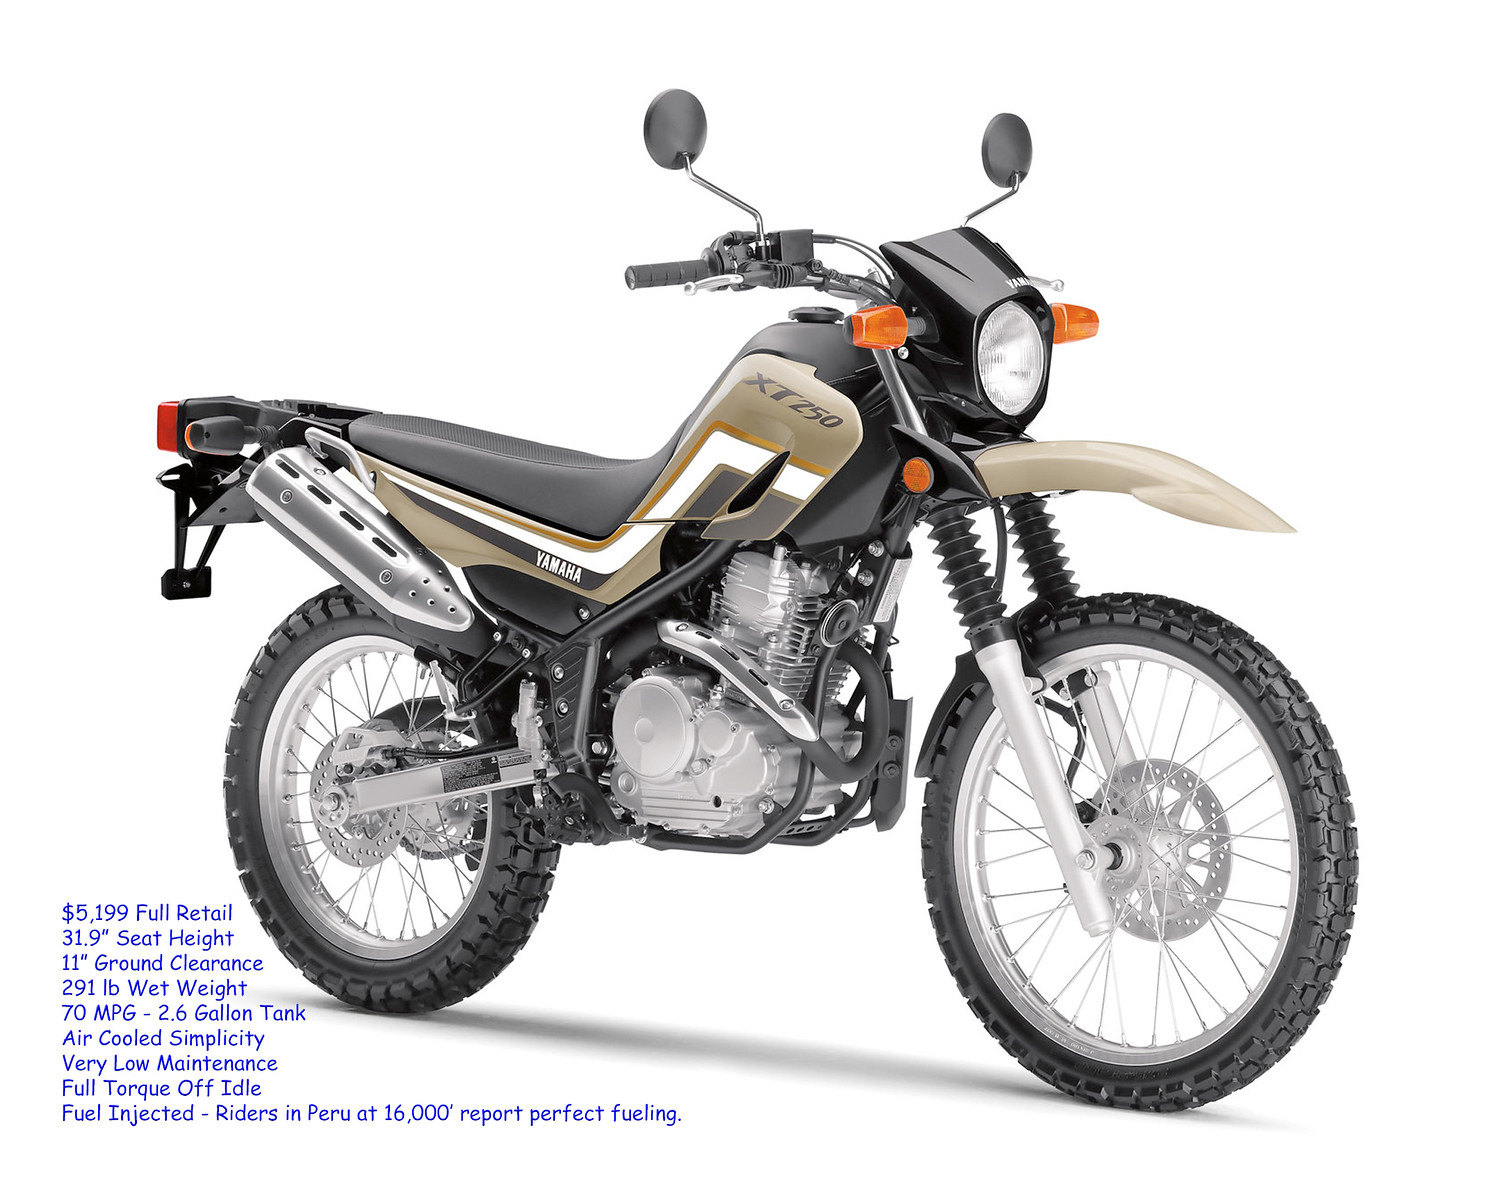 Yamaha XT250 Thread - All things related to the XT from